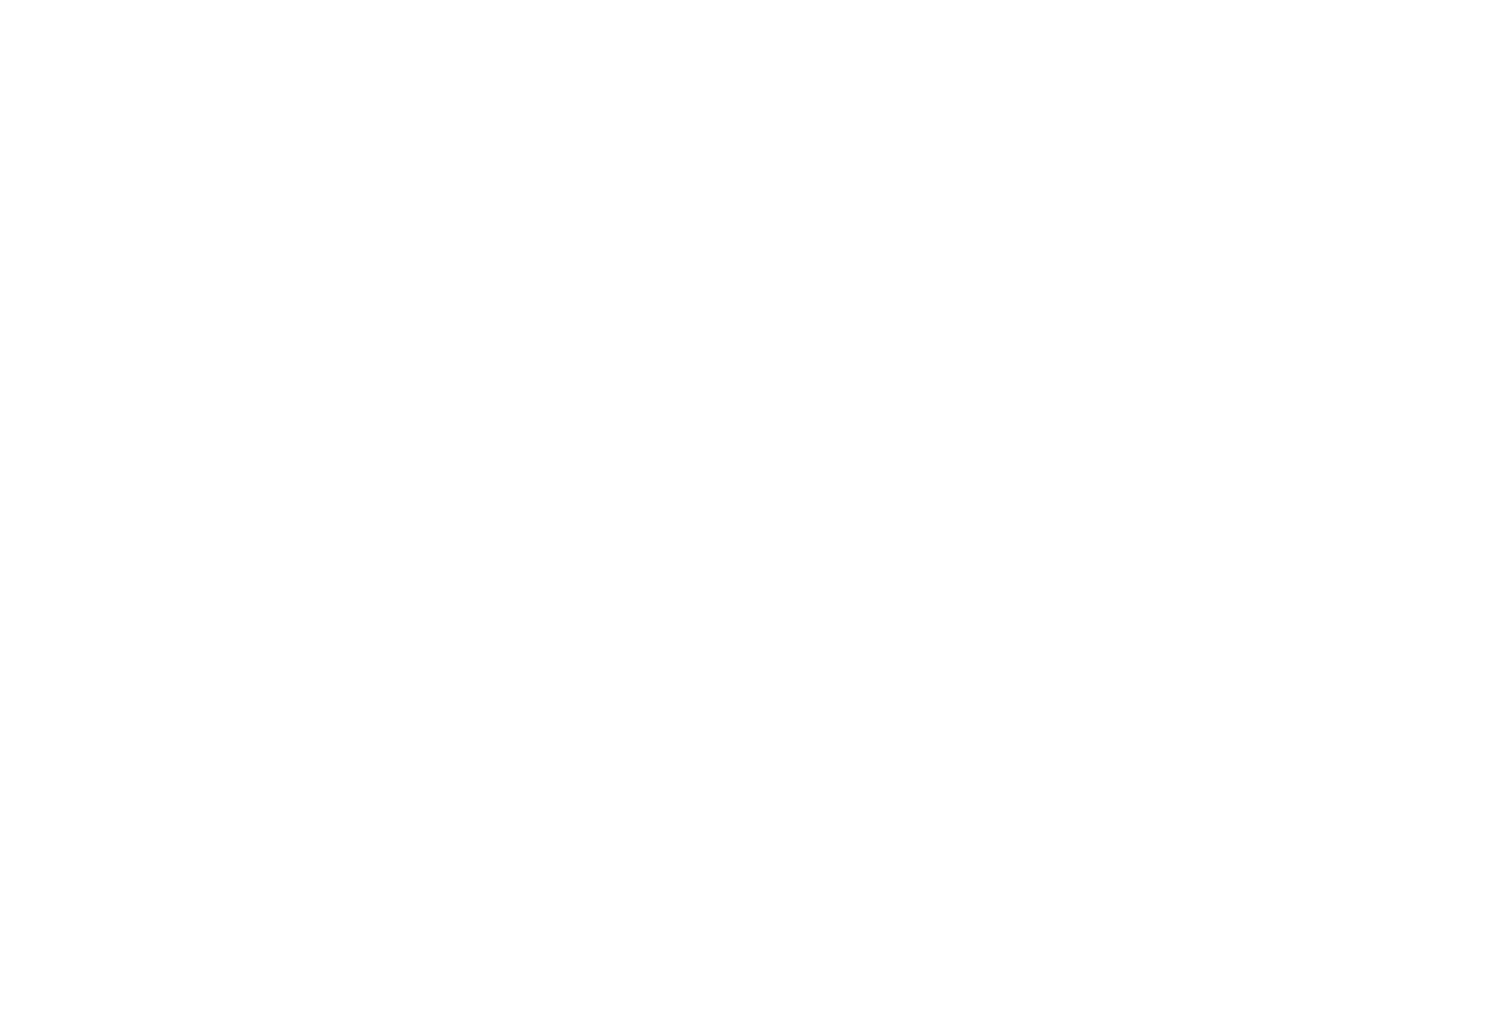 Elegance Beauty By Design